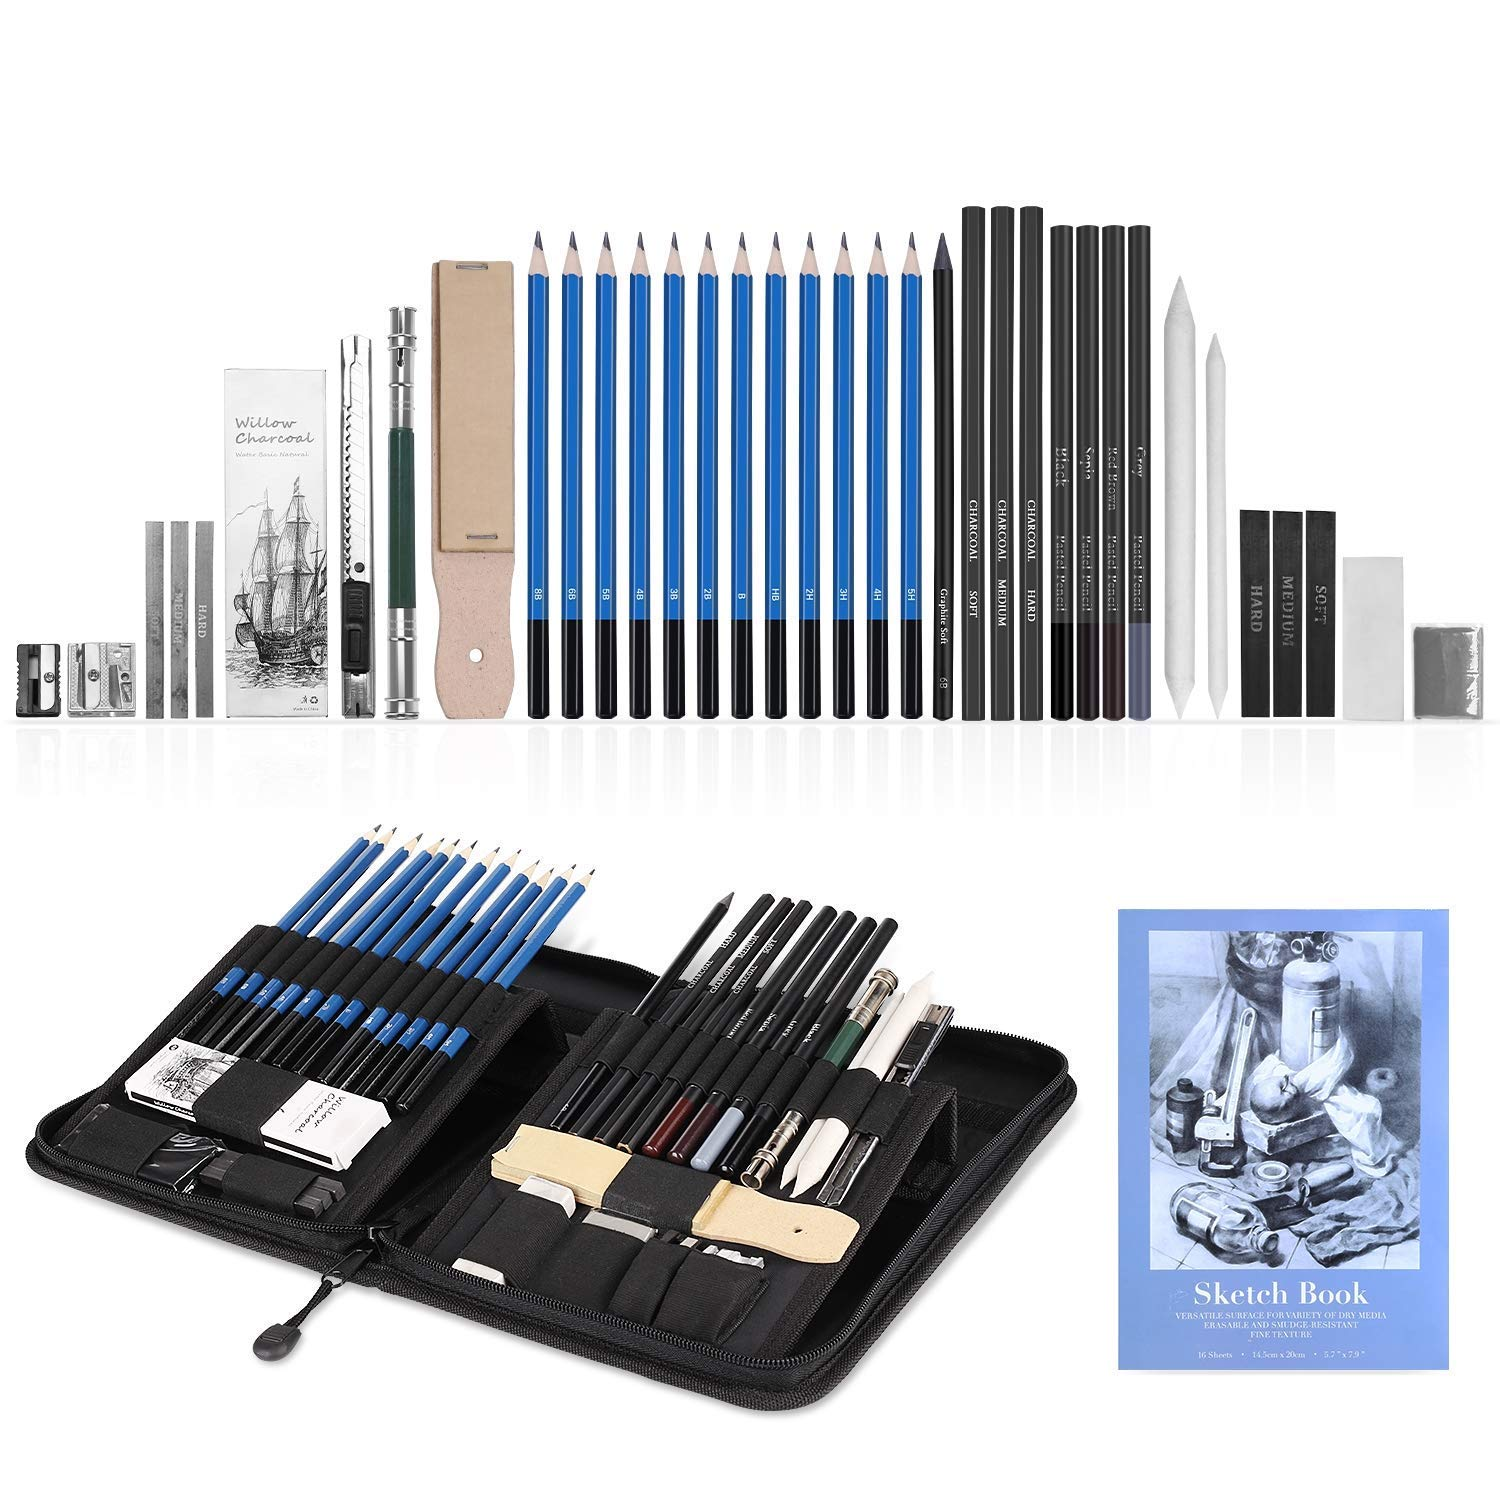 Amazon com ghb 41pcs drawing pencils sketching set graphite charcoal pencils art supplies with pop up stand erasers zippered carry case sketch book